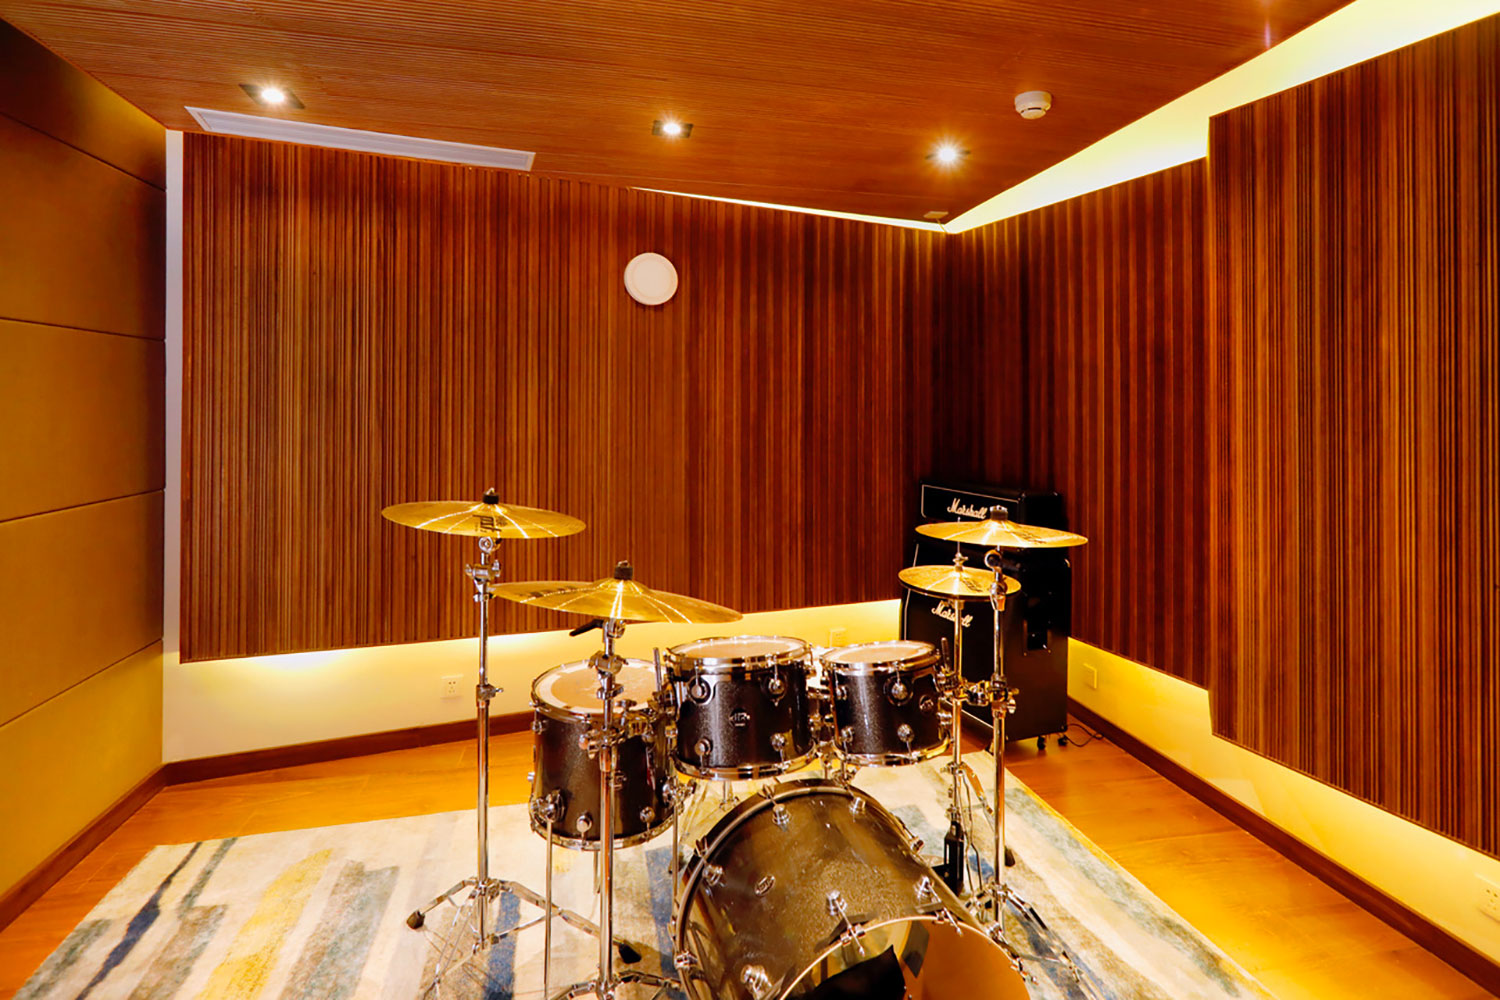 Zhejiang Conservatory of Music in Hangzhou, East China commissioned WSDG to create an important addition to this extraordinary institution, a 21st Century Music Production & Education Complex. Boutique ISO Booth with Drums set.